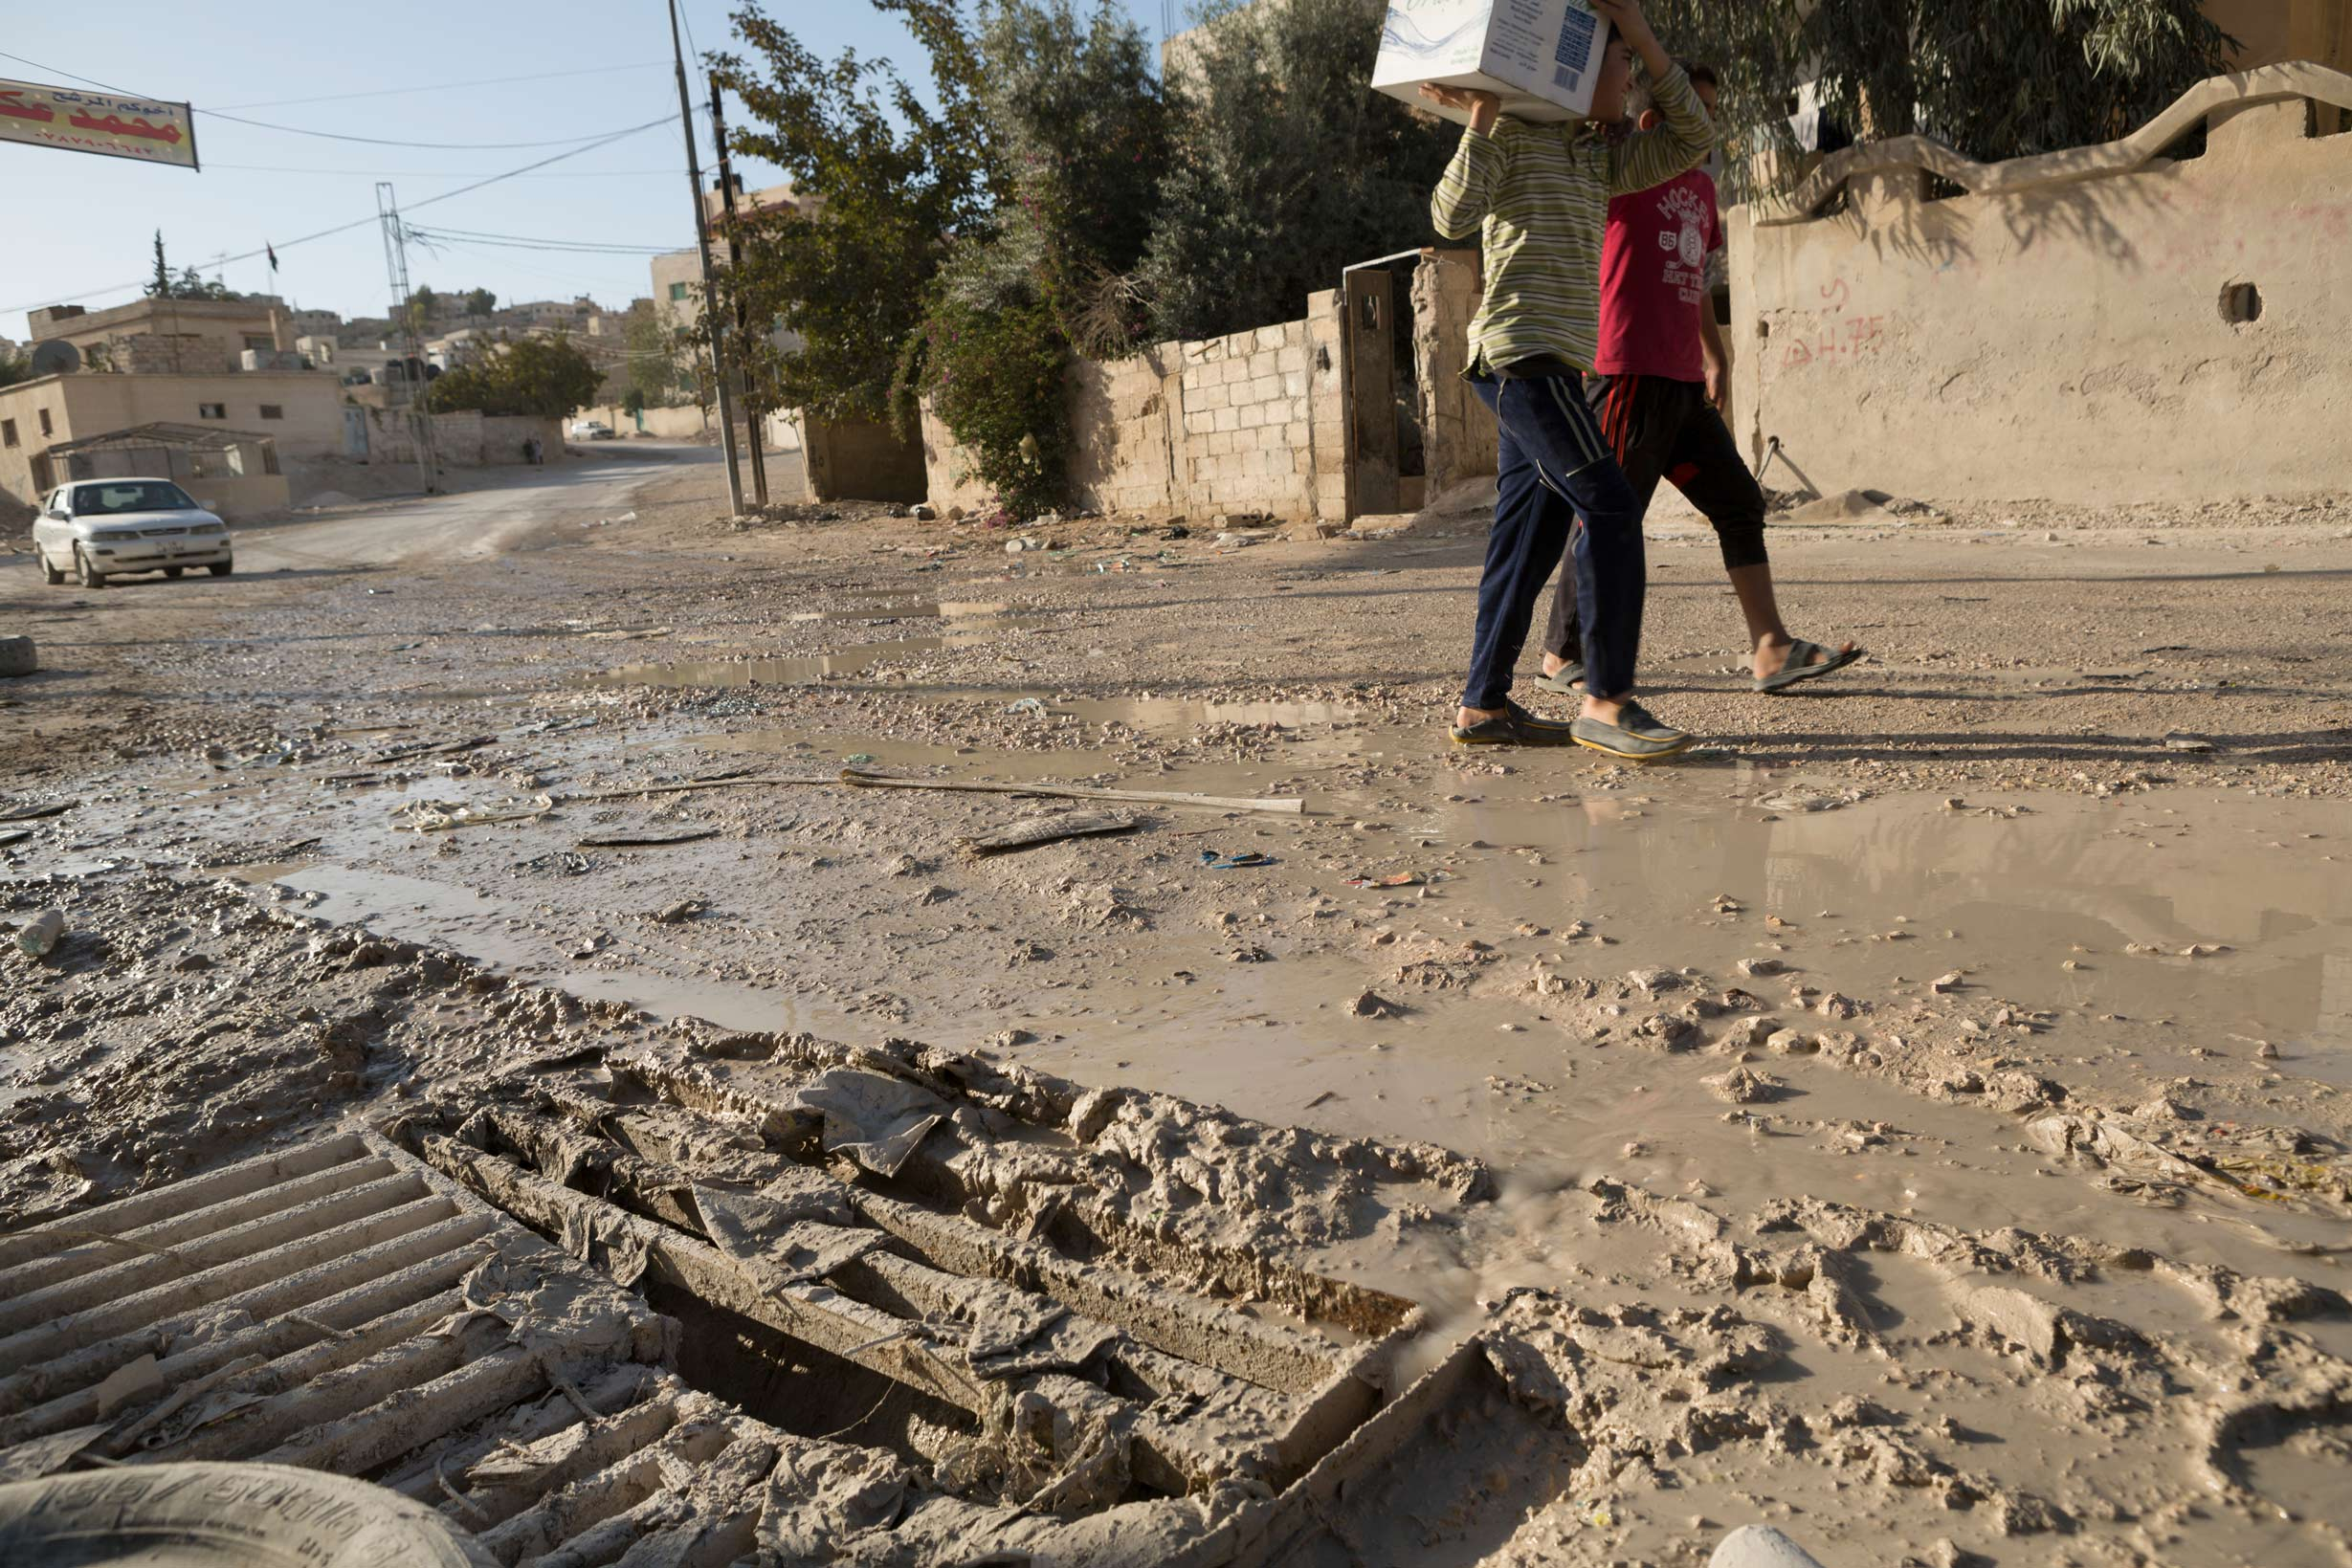 Raw wastewater overflows from sewers into the streets and neighborhoods of the city of Zarqua, Jordan in 2013.